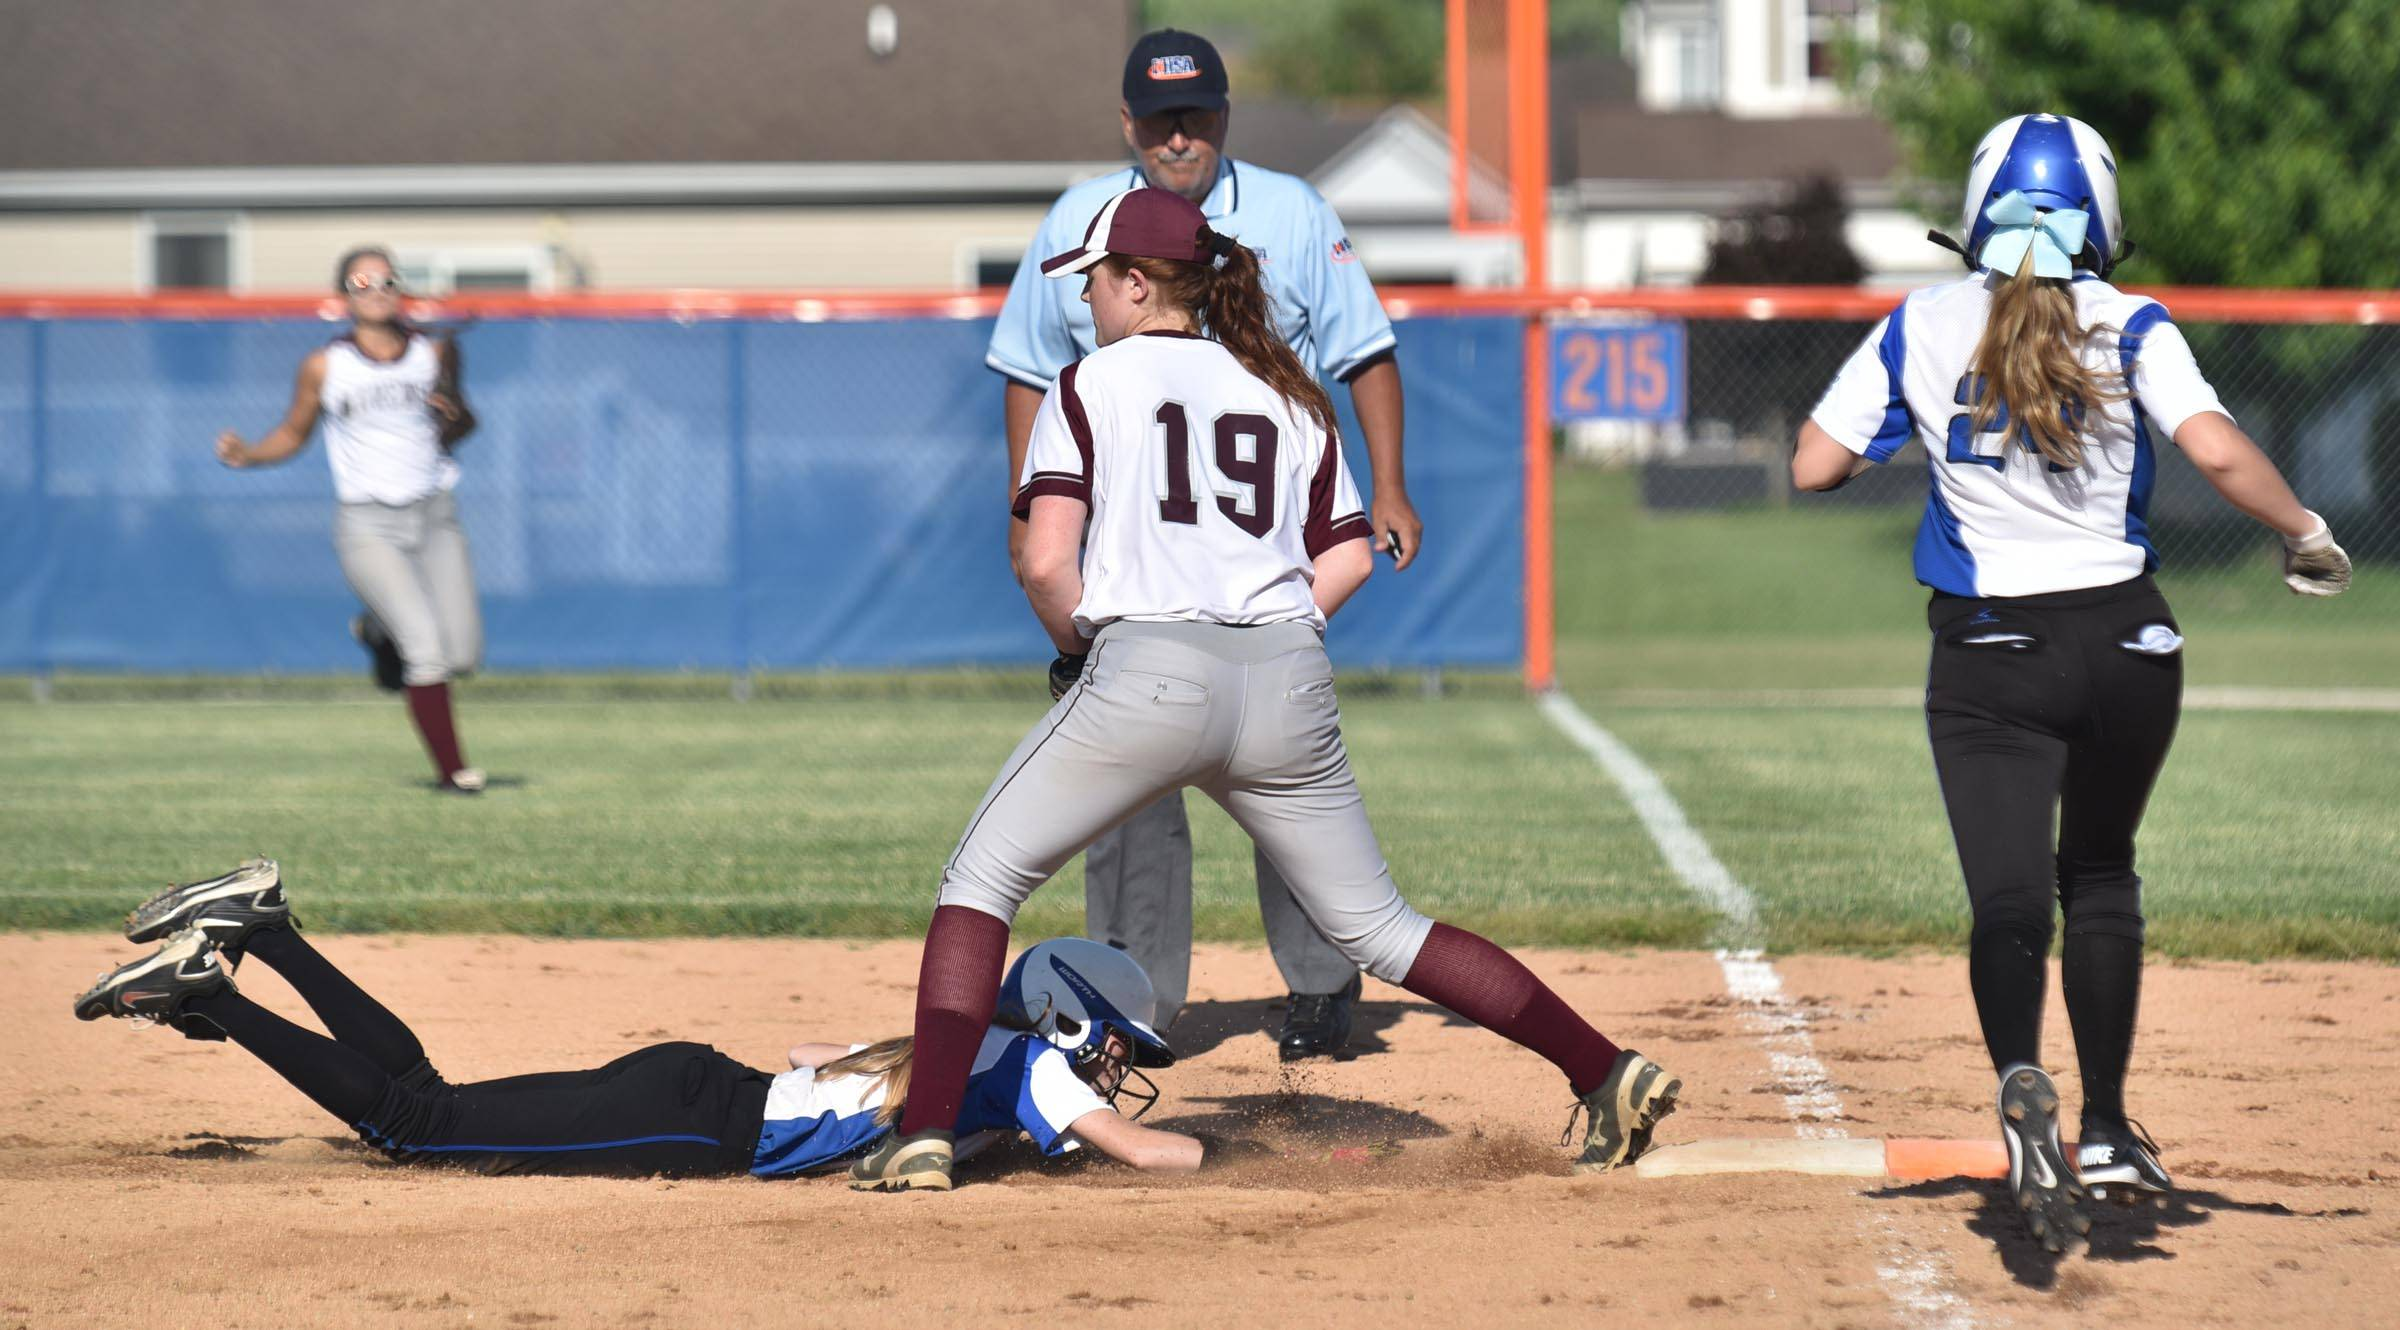 Burlington Central's Kassie Kramer is forced out as she dives back to first base after being caught too far off the bag on a line drive out by teammate Emily Kisch as Marengo's Megan Anthony secures the ball in the sixth inning Wednesday in the Genoa-Kingston sectional game.